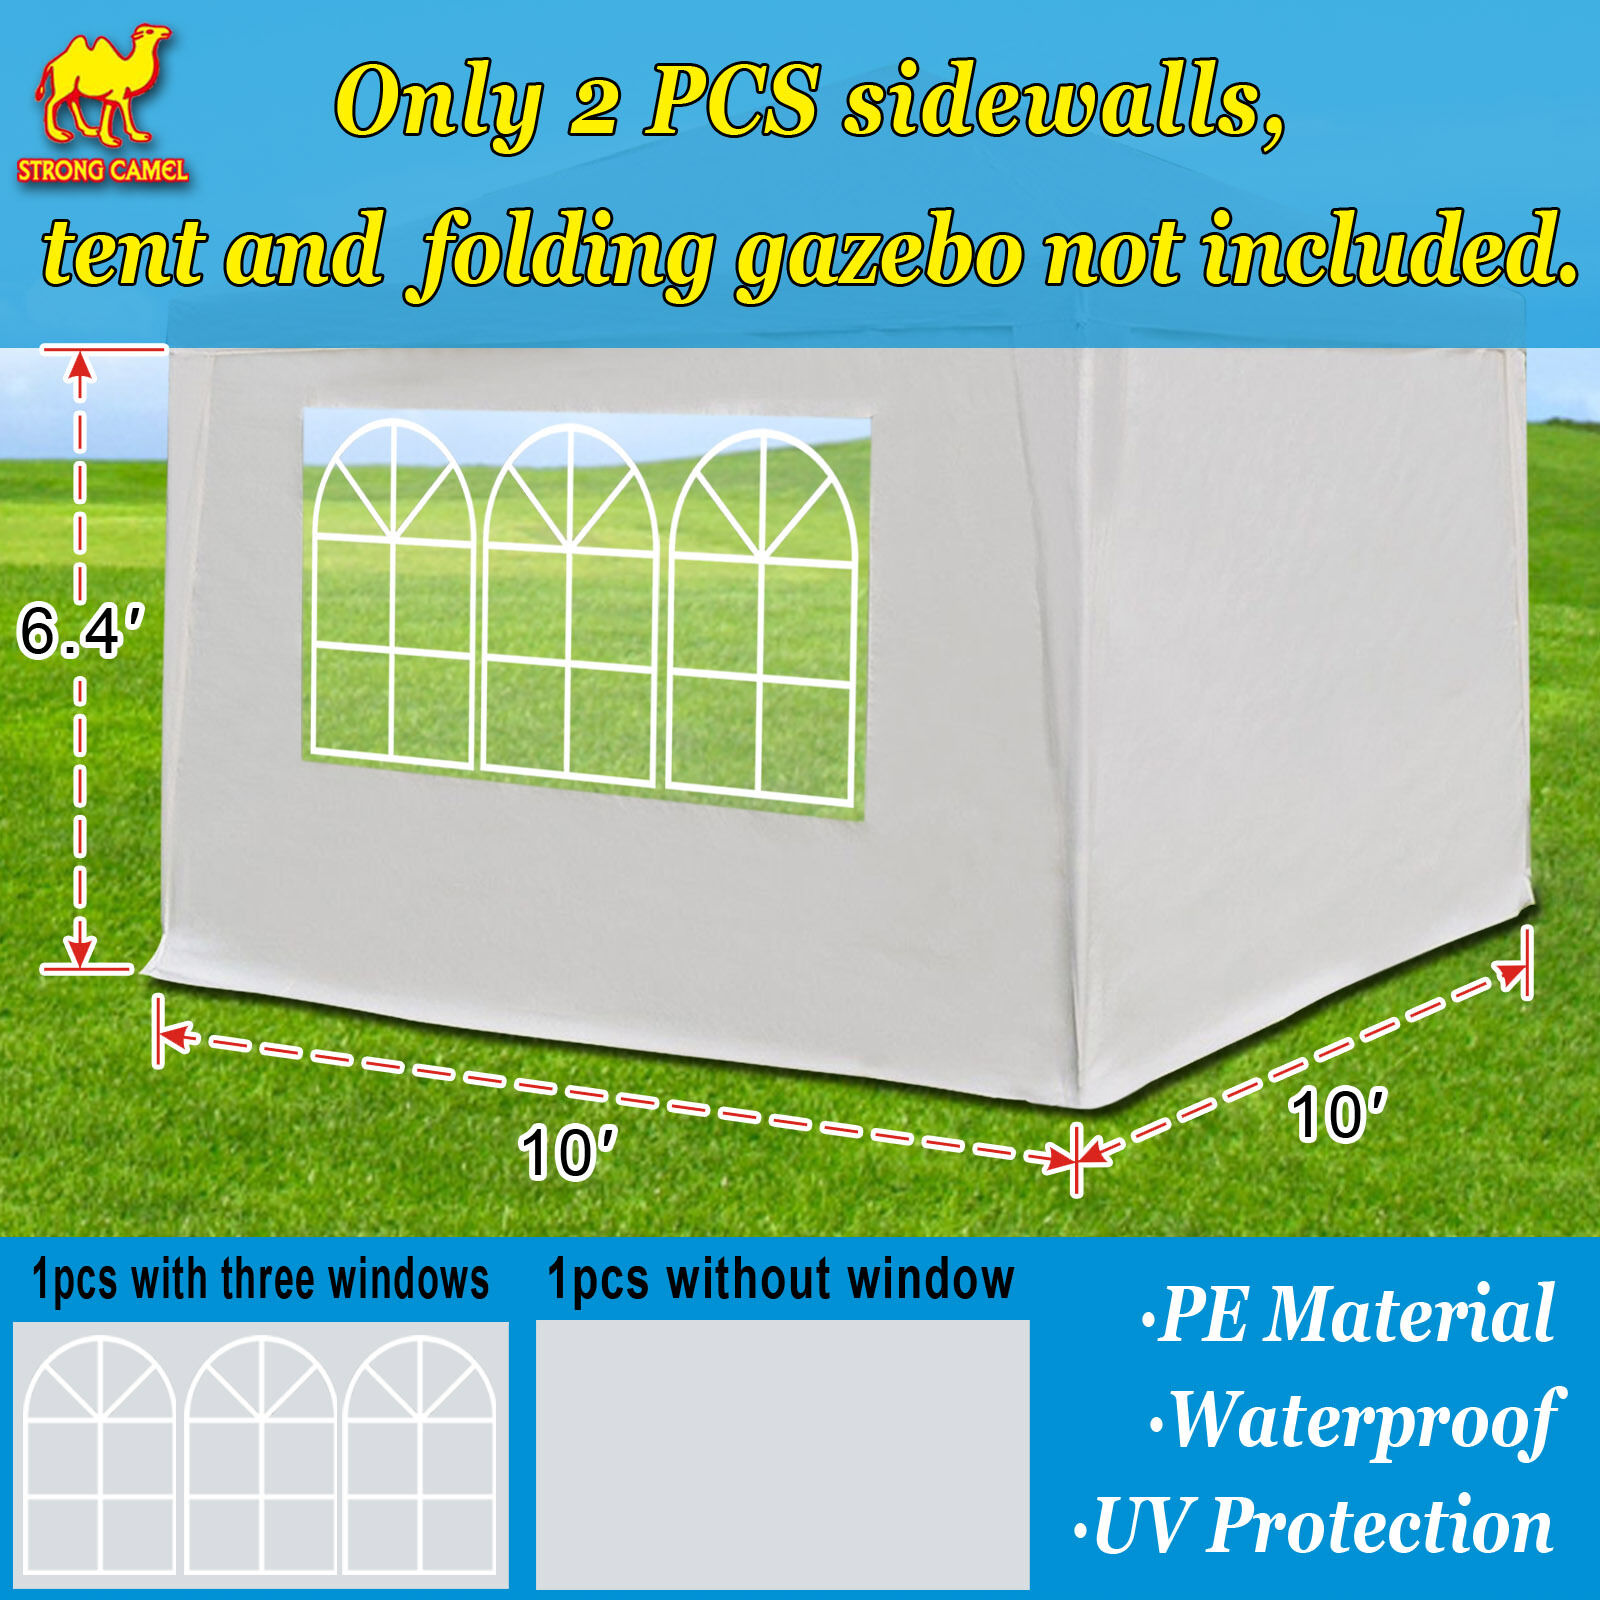 10' x 10' Tent SIDEWALLS for  Pop up Canopy Outdoor Side Panels w/window